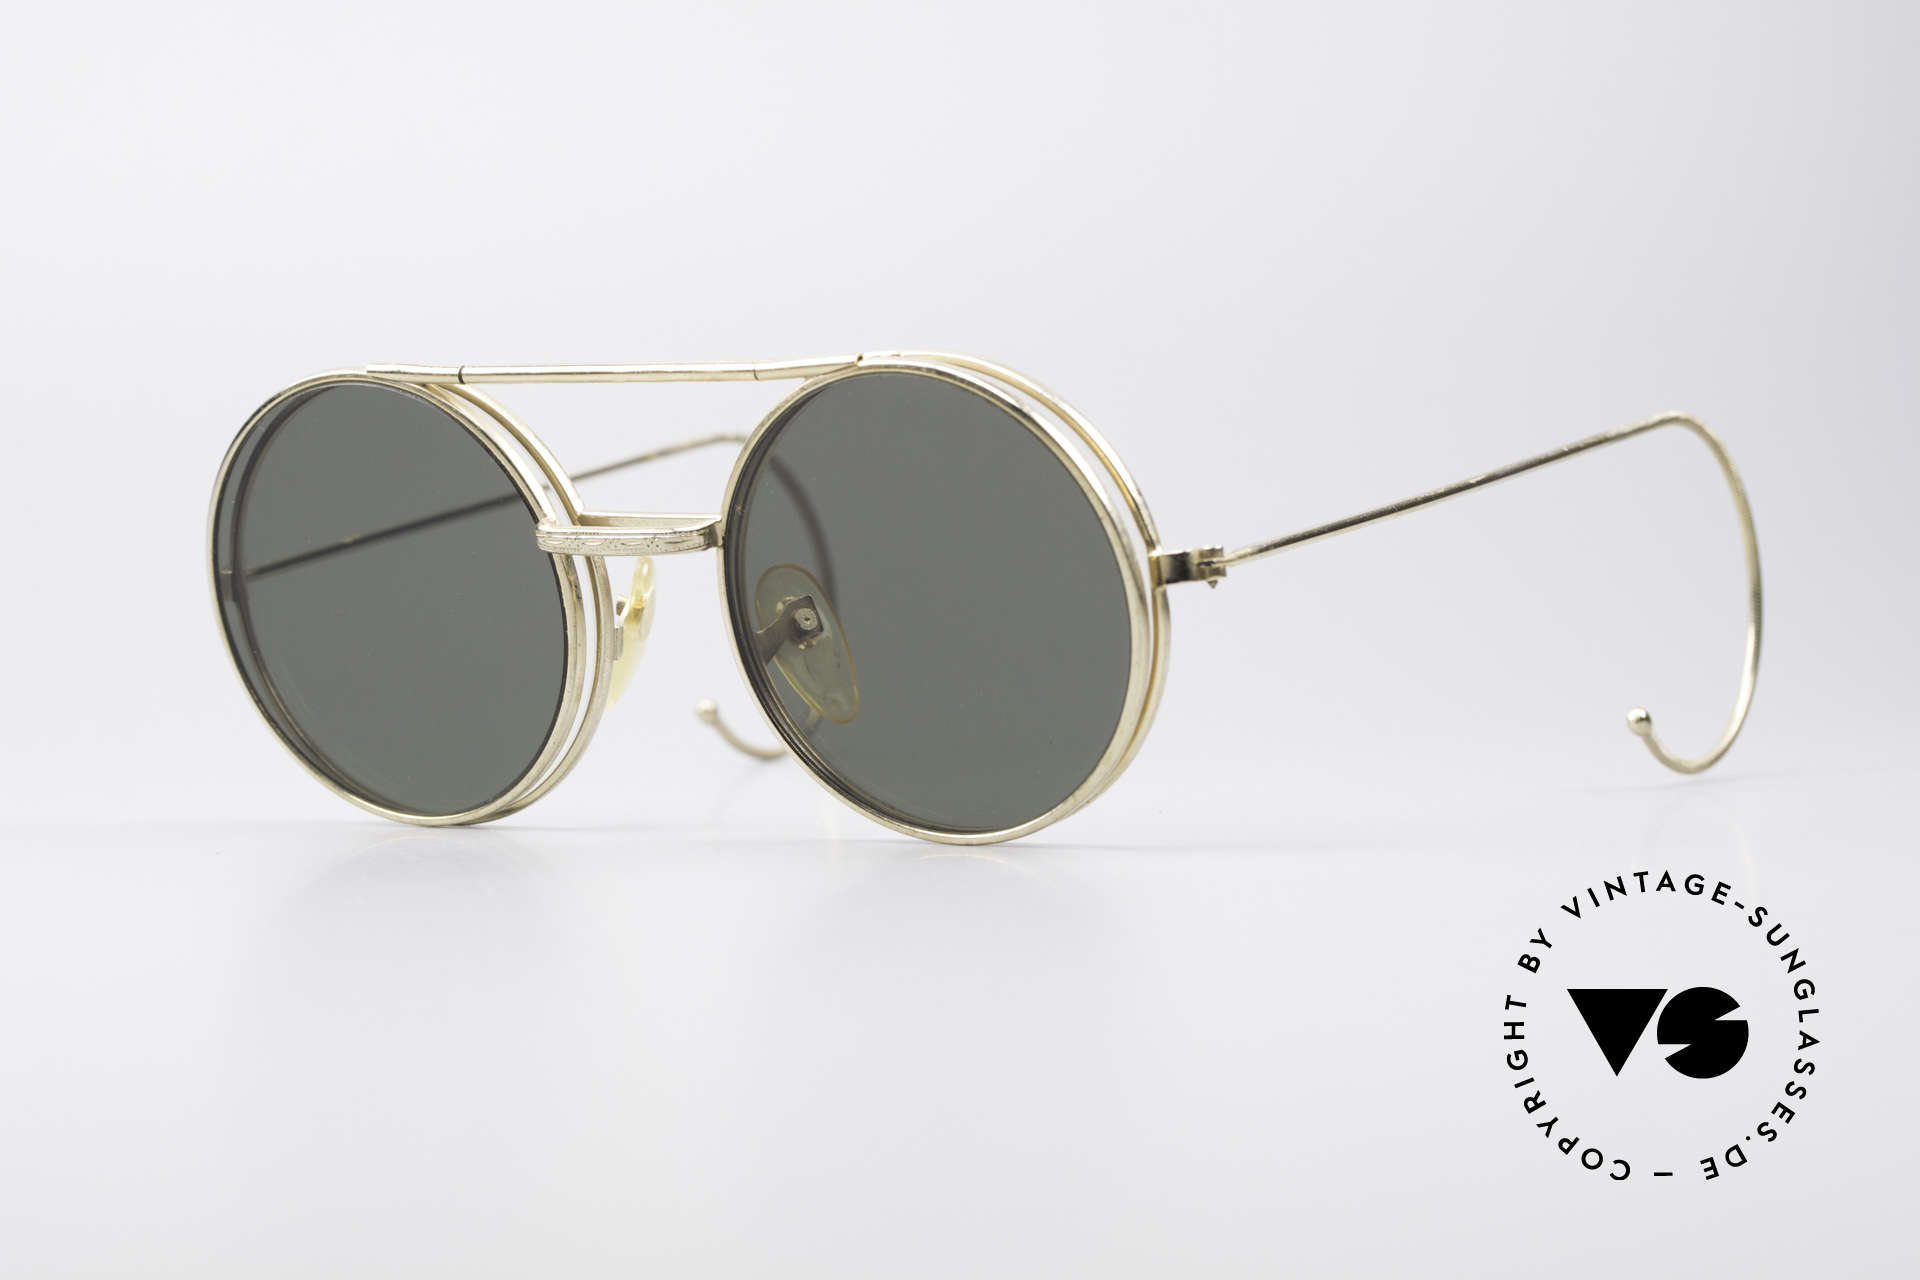 Django Unchained Iconic Movie Sunglasses, old vintage sunglasses from the late 1960's / early 70's, Made for Men